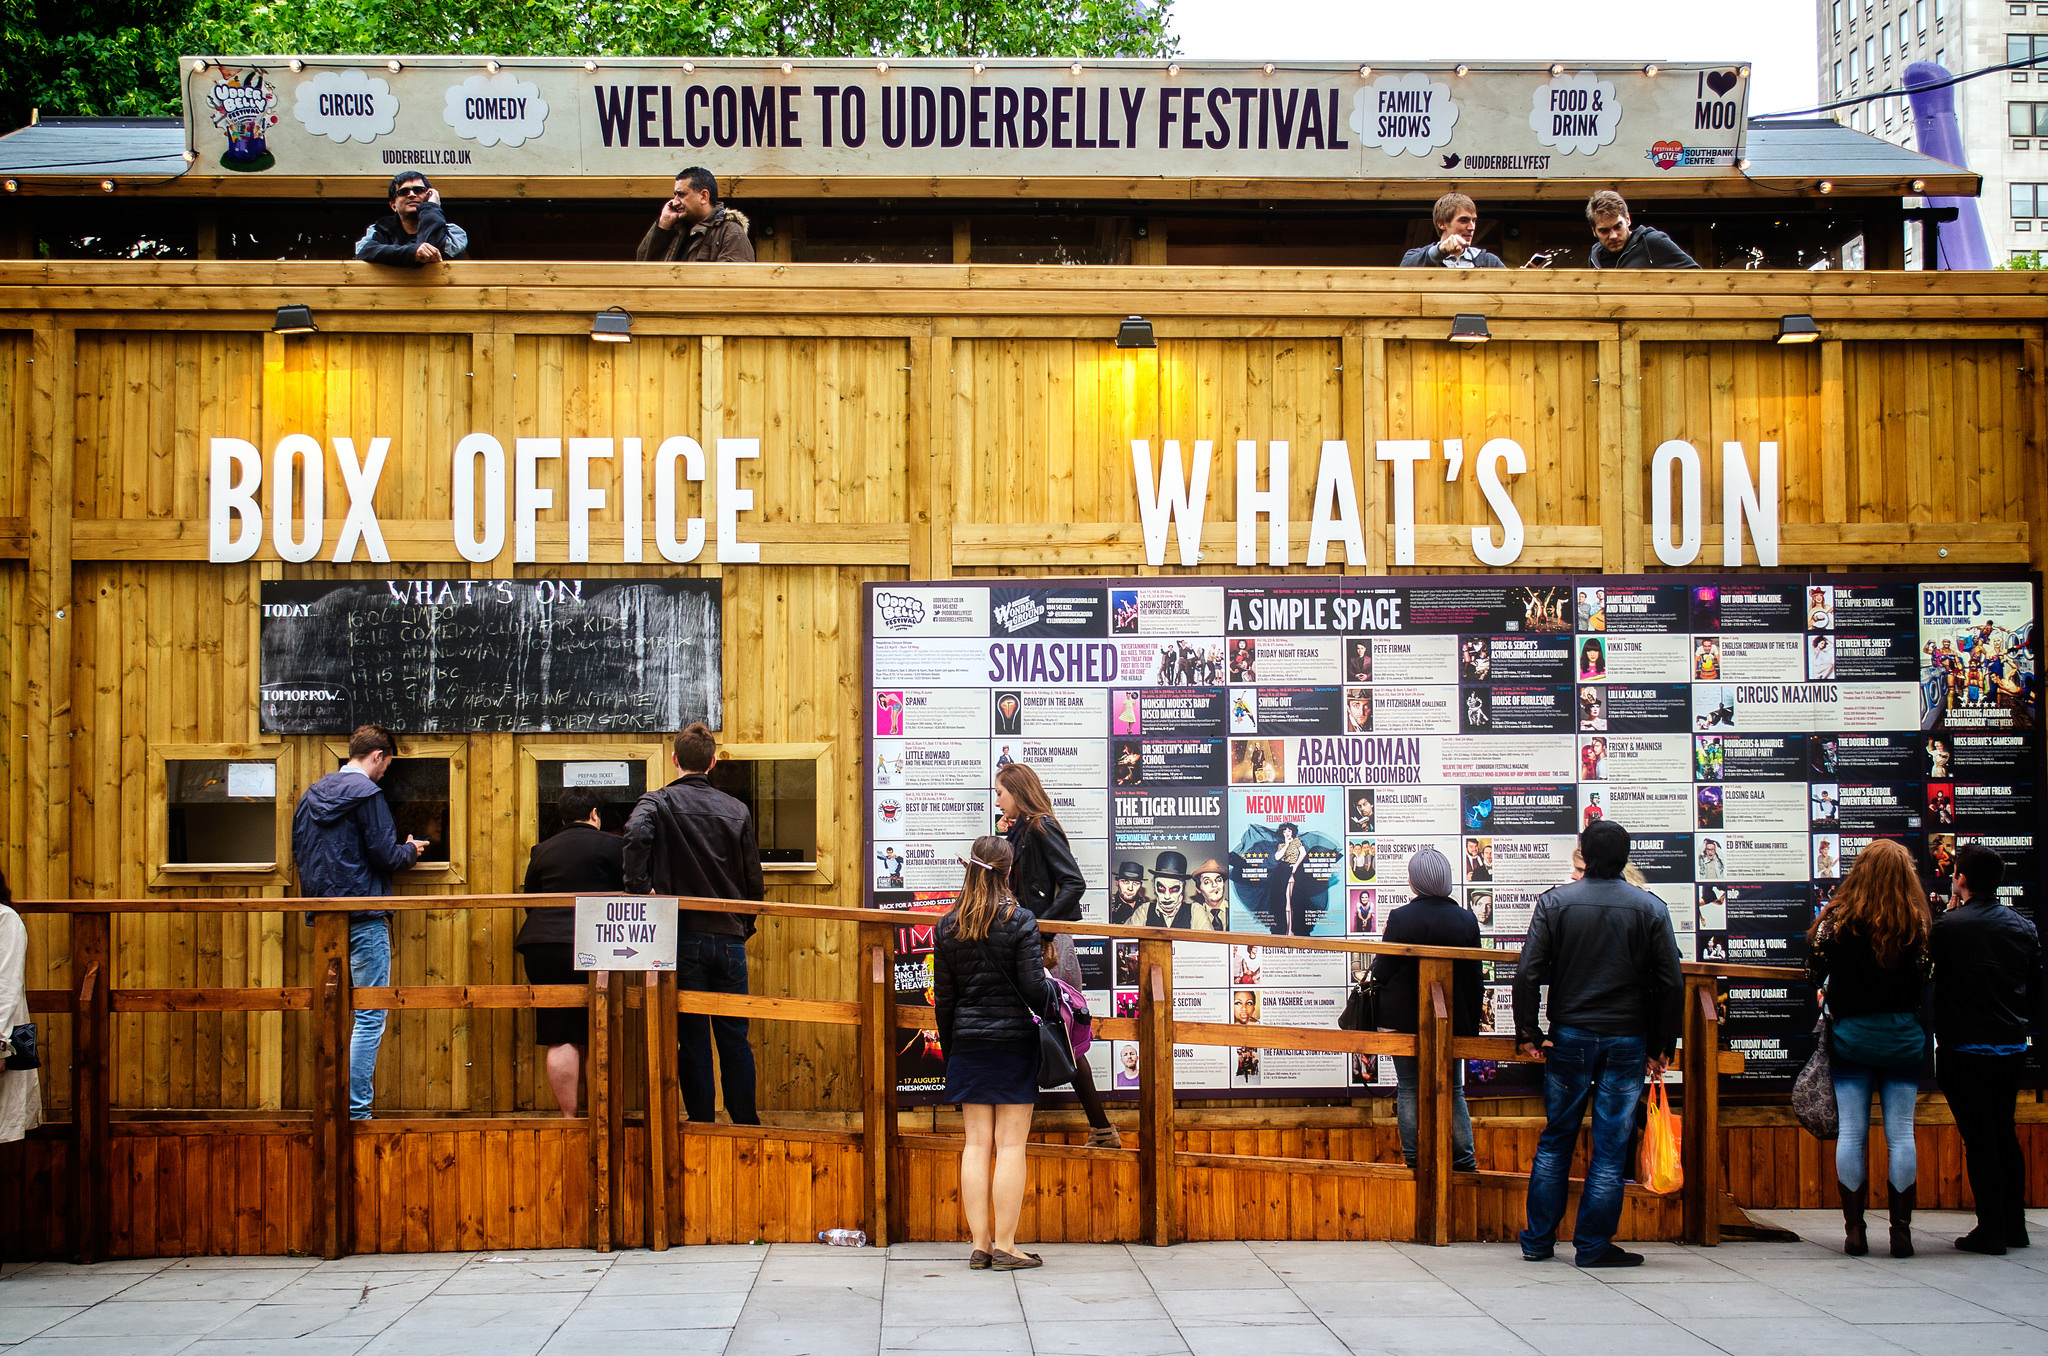 Udderbelly box office